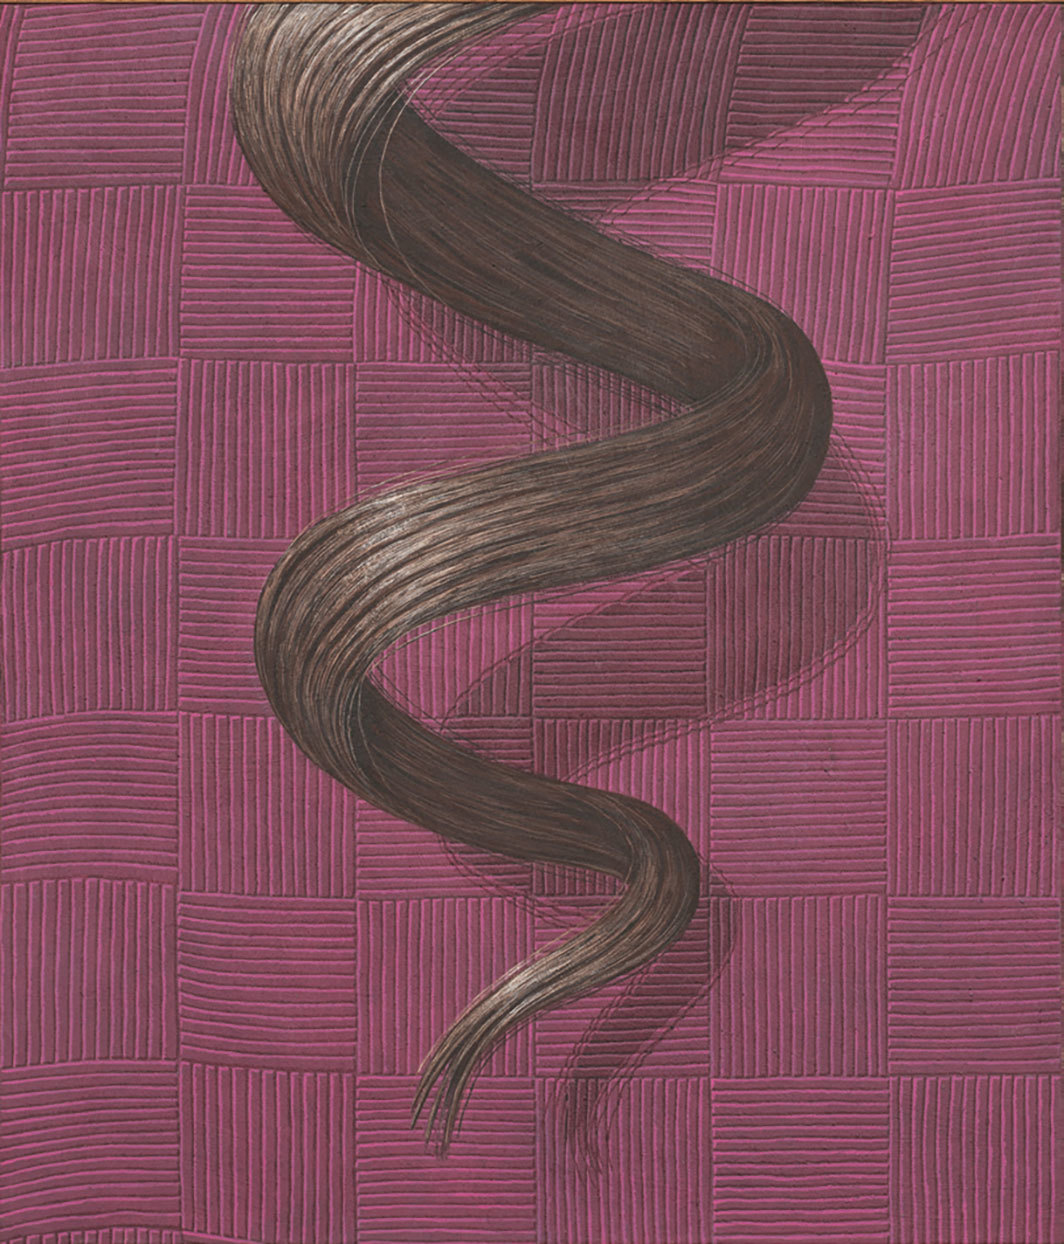 "Domenico Gnoli, Curl, 1969, acrylic and sand on canvas, 54 3⁄4 × 47 1⁄4""."